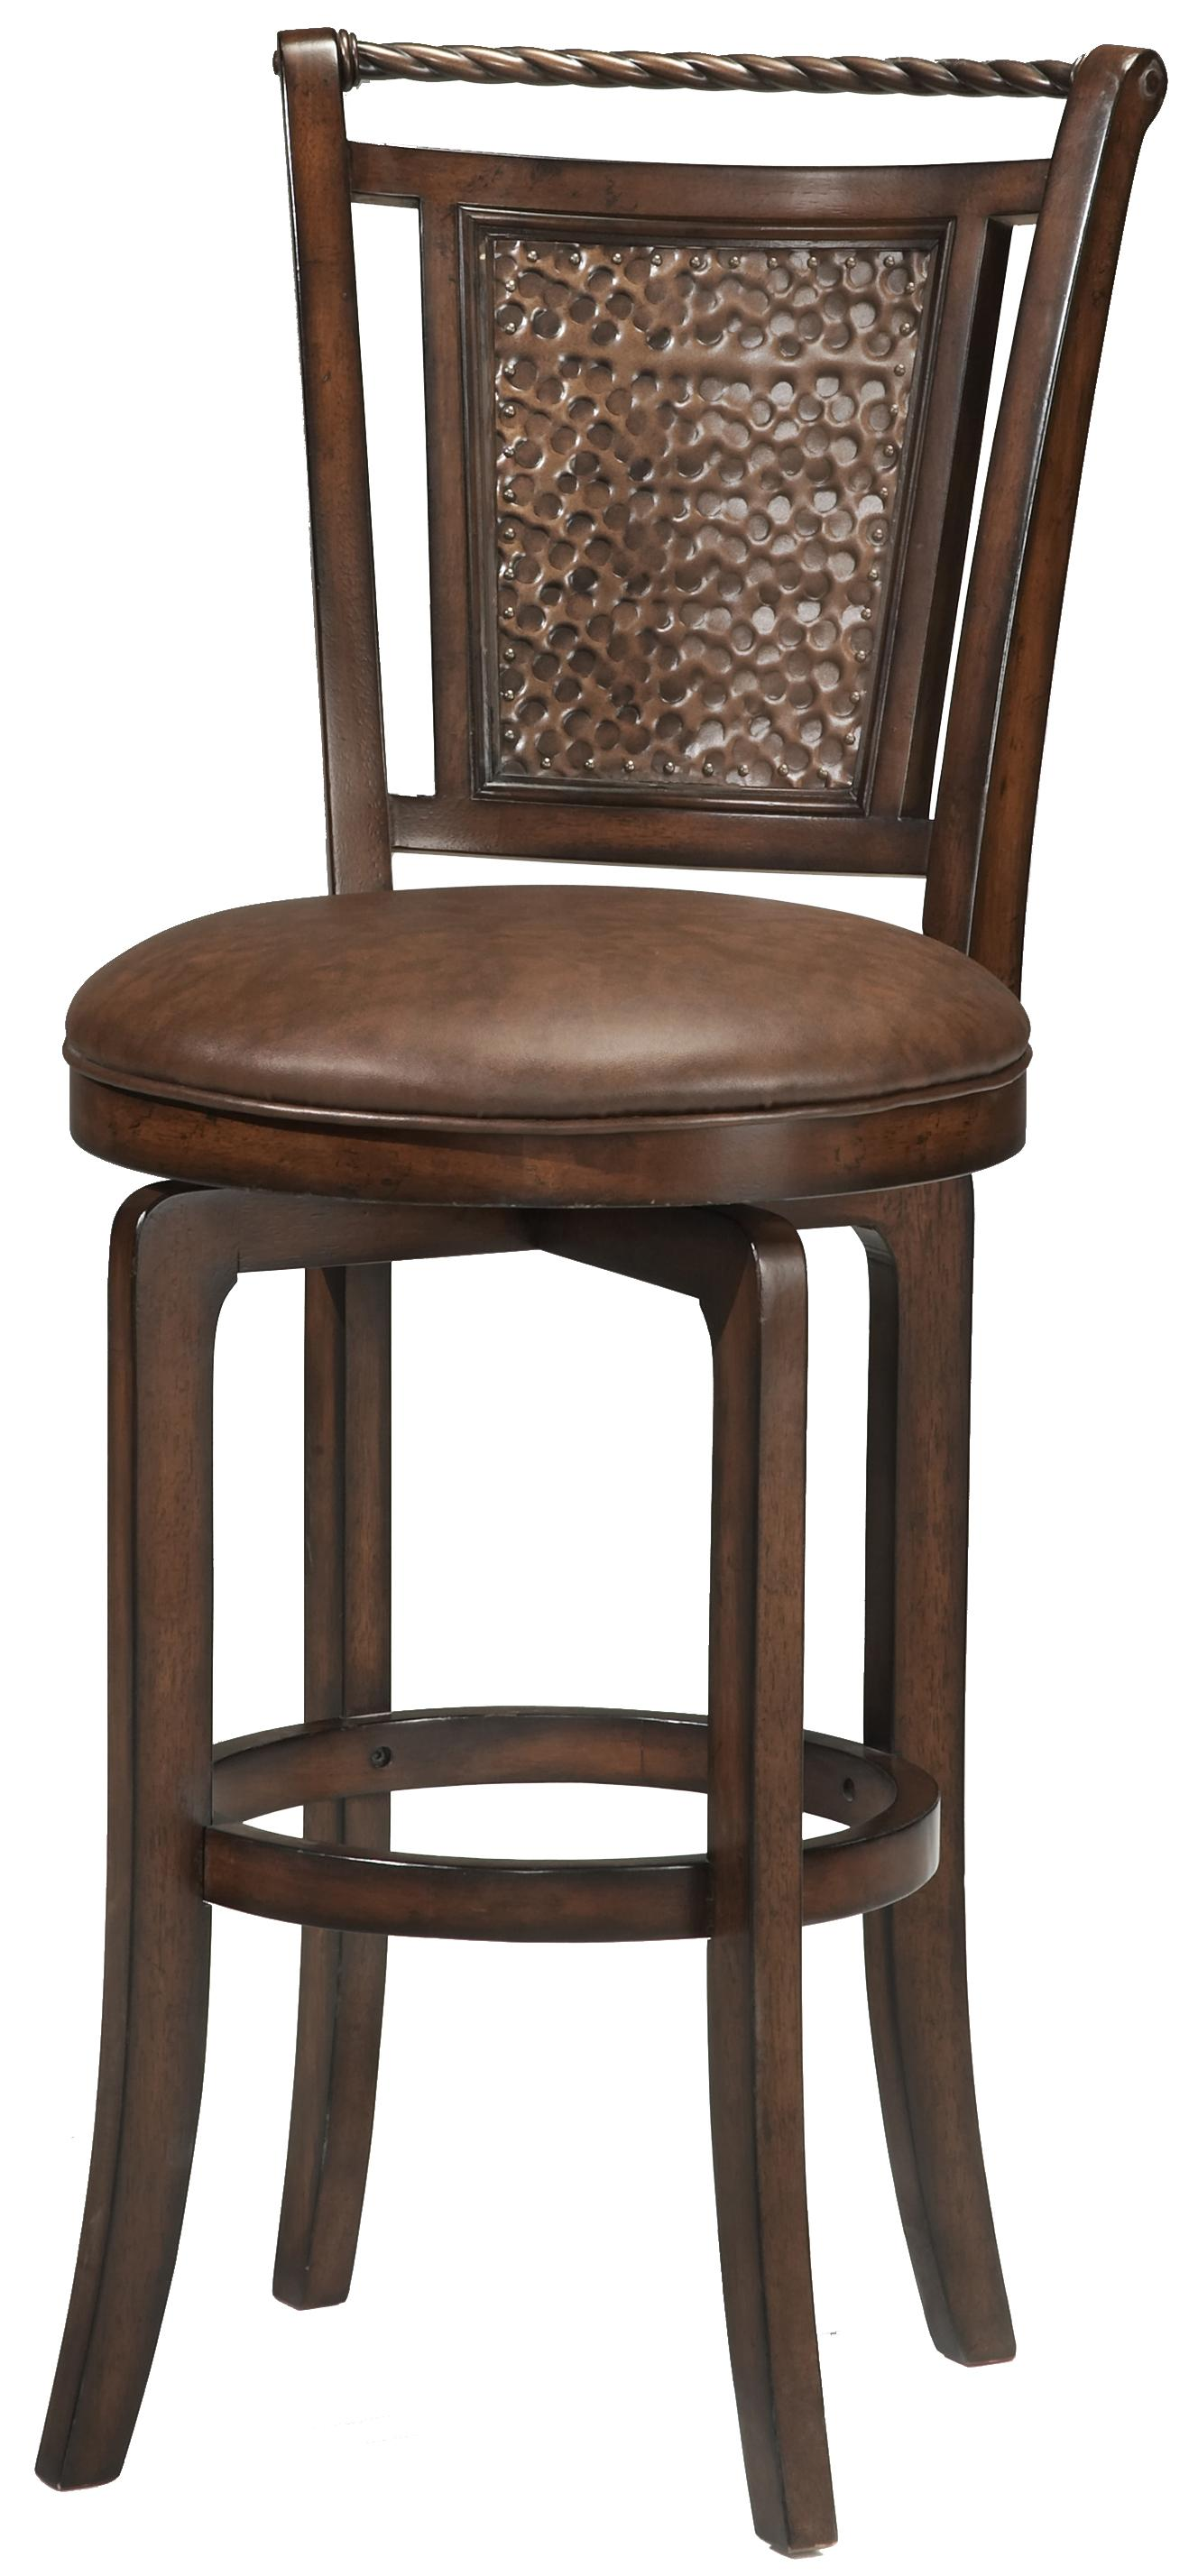 26 5 Quot Counter Height Norwood Swivel Stool By Hillsdale